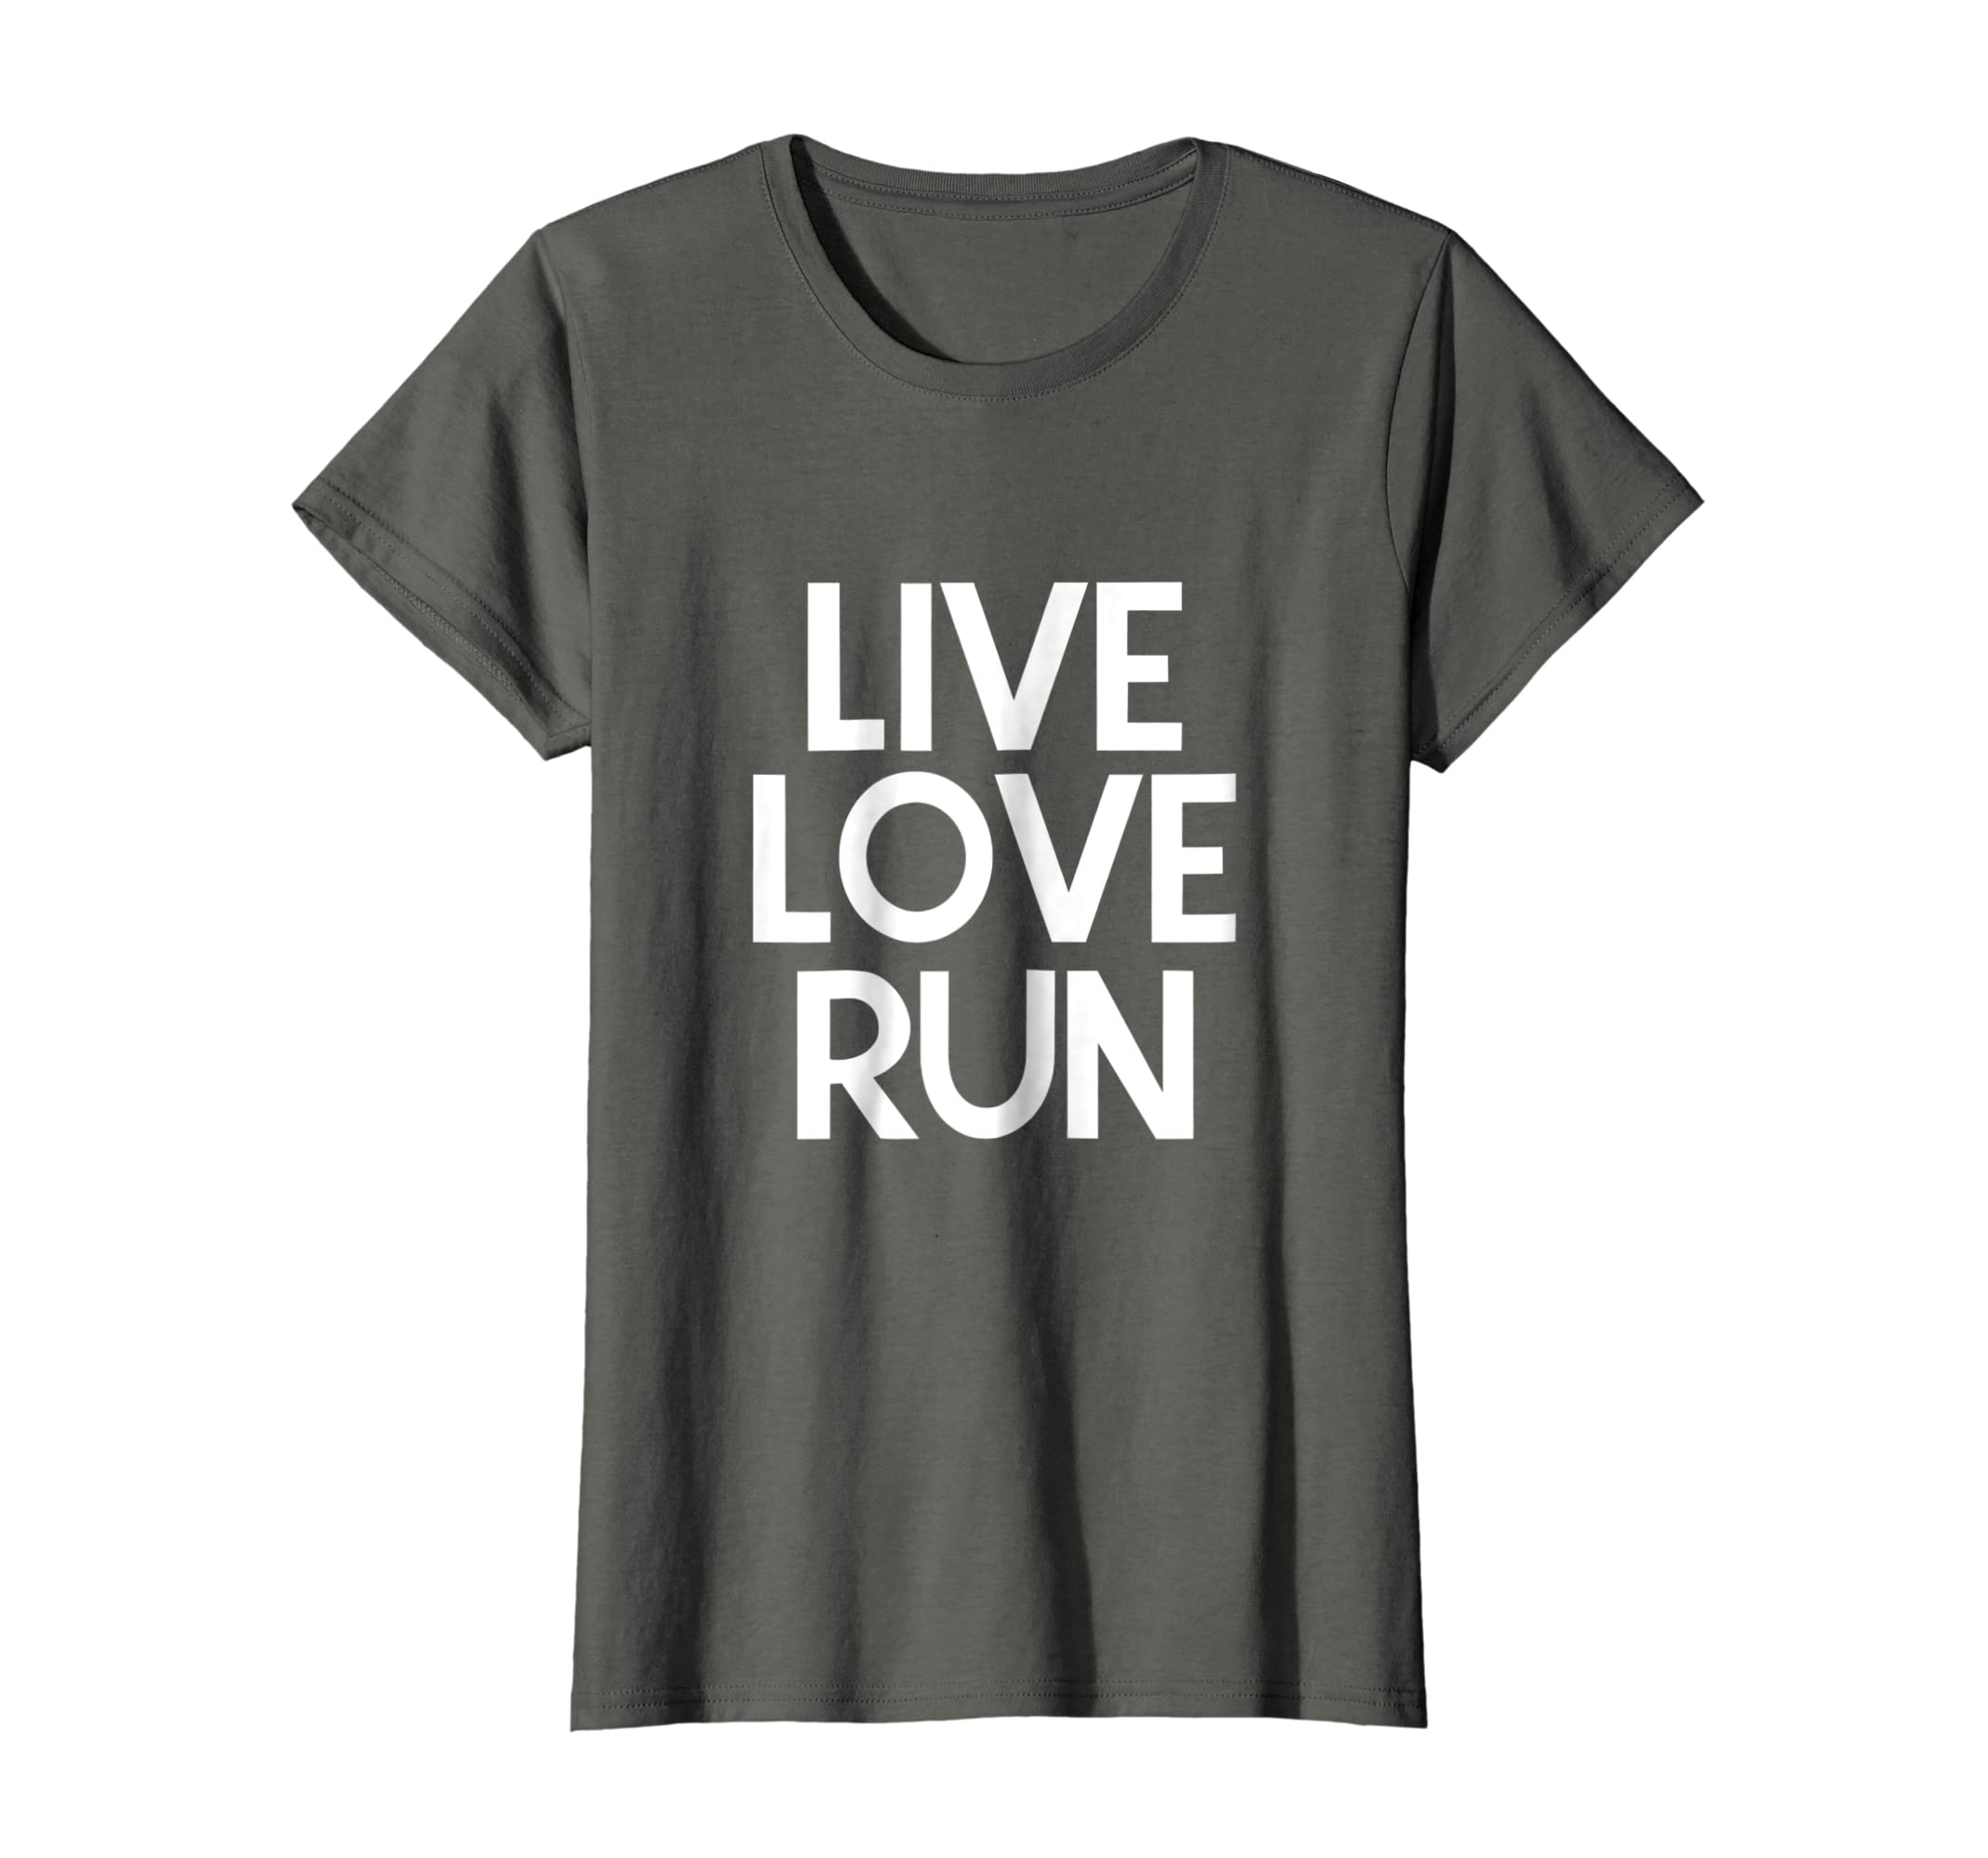 6c0c20b0d28cb Amazon.com  Live Love Run Shirt  Clothing